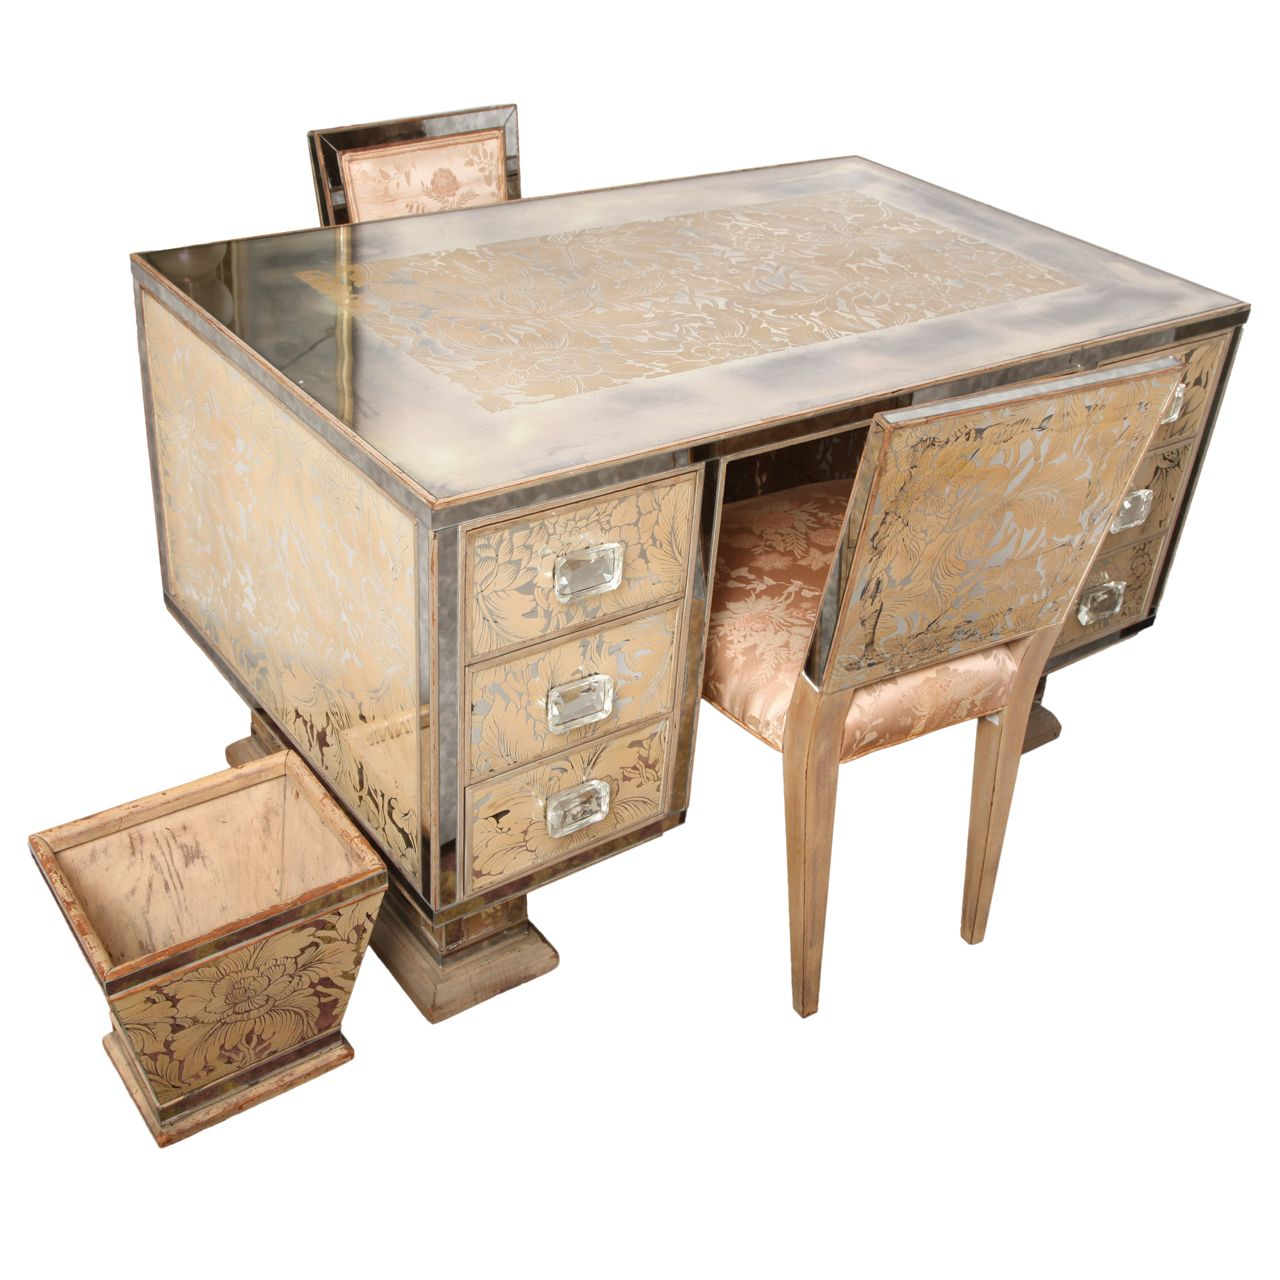 Art Deco Eglomise Mirrored Twin Vanity/Desk With Chairs and Waste Basket,France, c 1930's.